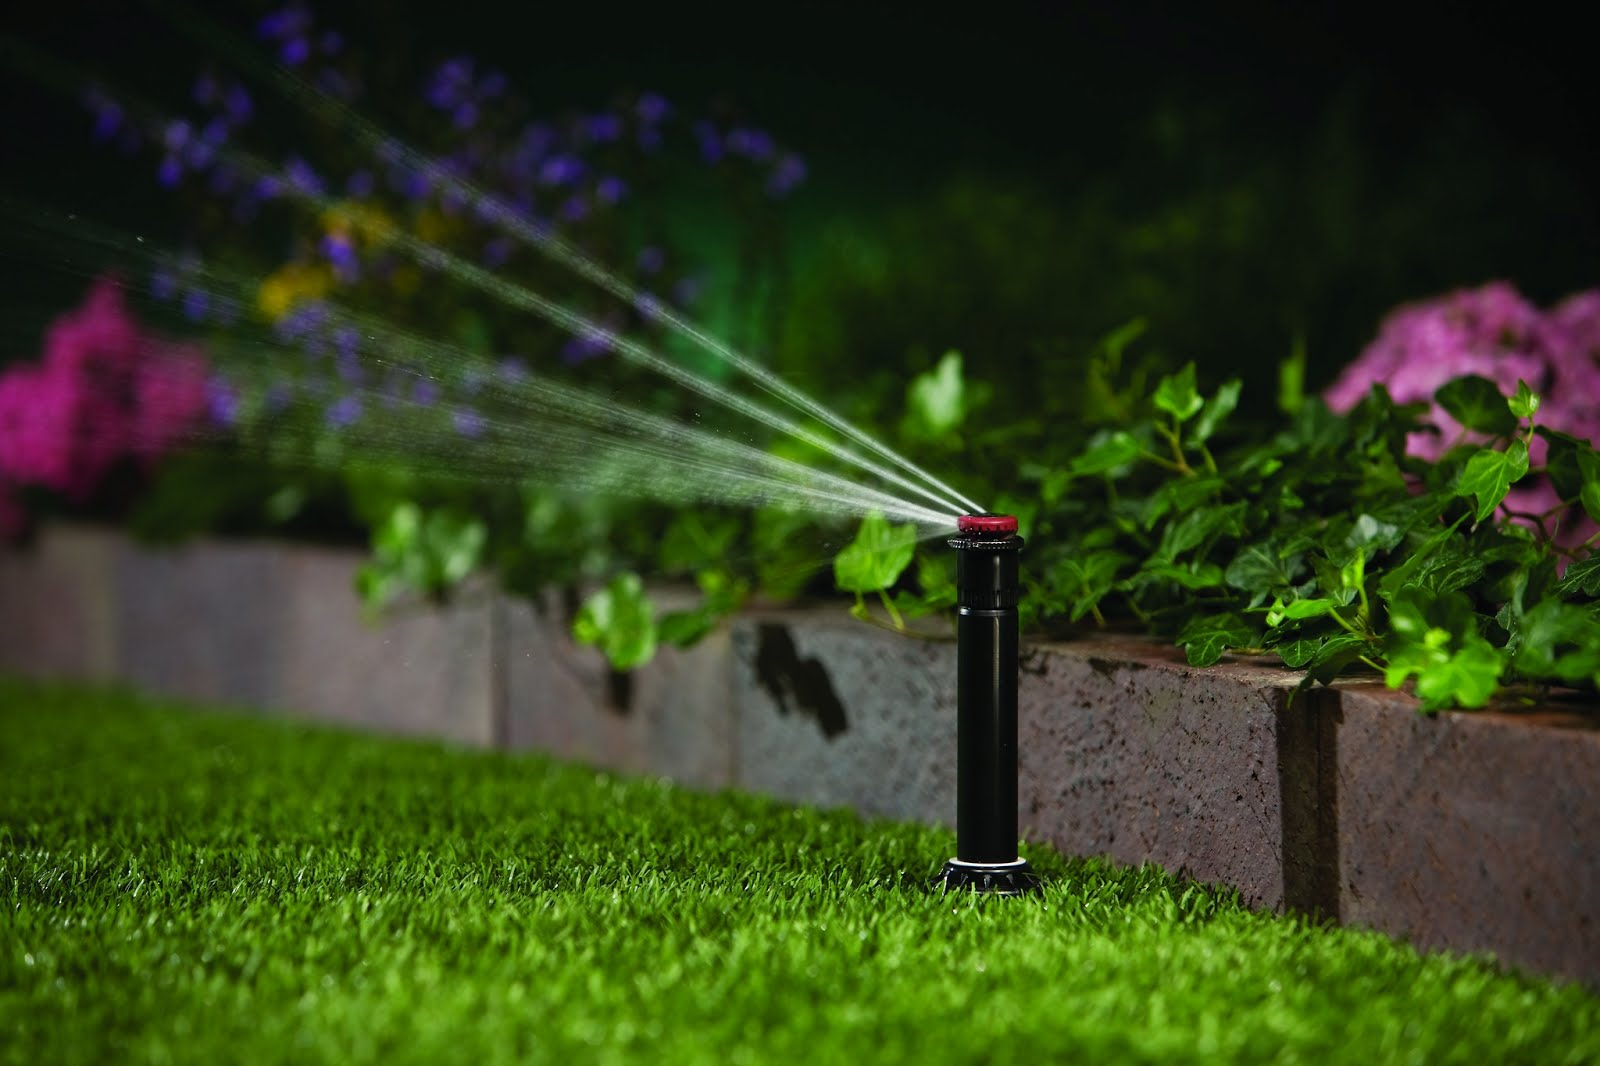 Sprinkler Services-Flower Mound TX Professional Landscapers & Outdoor Living Designs-We offer Landscape Design, Outdoor Patios & Pergolas, Outdoor Living Spaces, Stonescapes, Residential & Commercial Landscaping, Irrigation Installation & Repairs, Drainage Systems, Landscape Lighting, Outdoor Living Spaces, Tree Service, Lawn Service, and more.